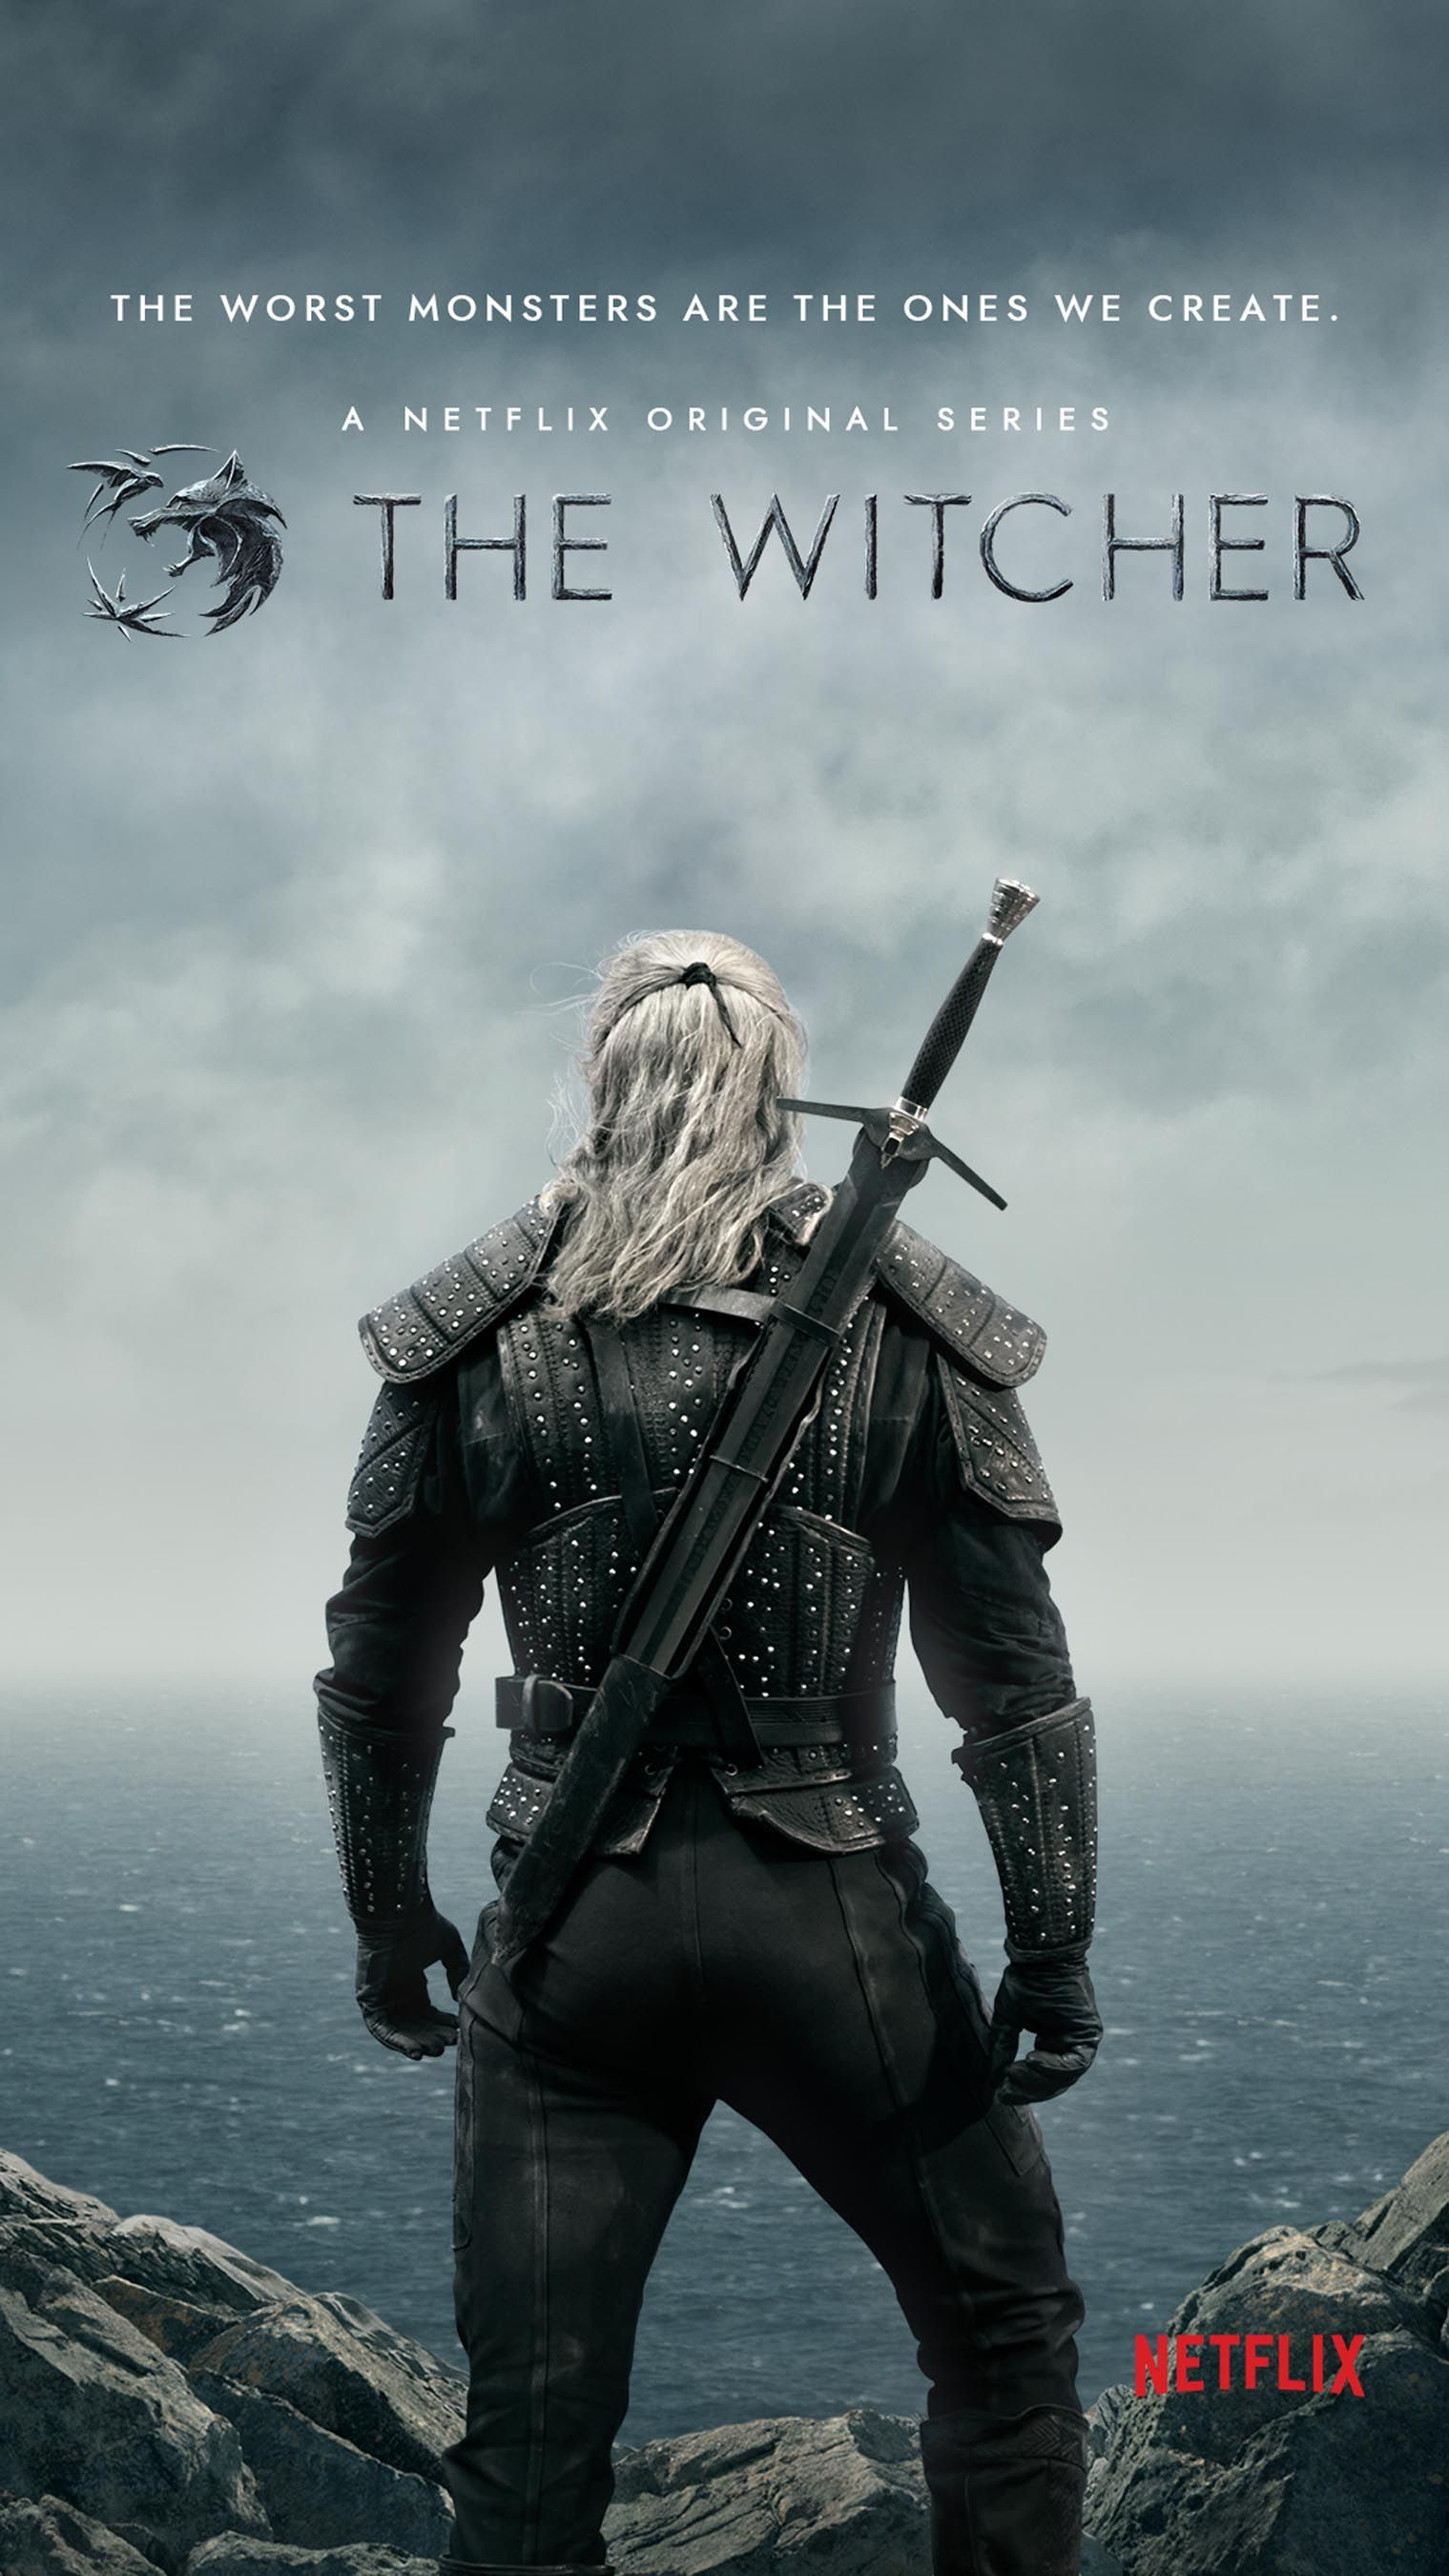 Netflix S The Witcher Reveals 7 First Look Photos From Fantasy Series Netflix Cast The Witcher Books The Witcher